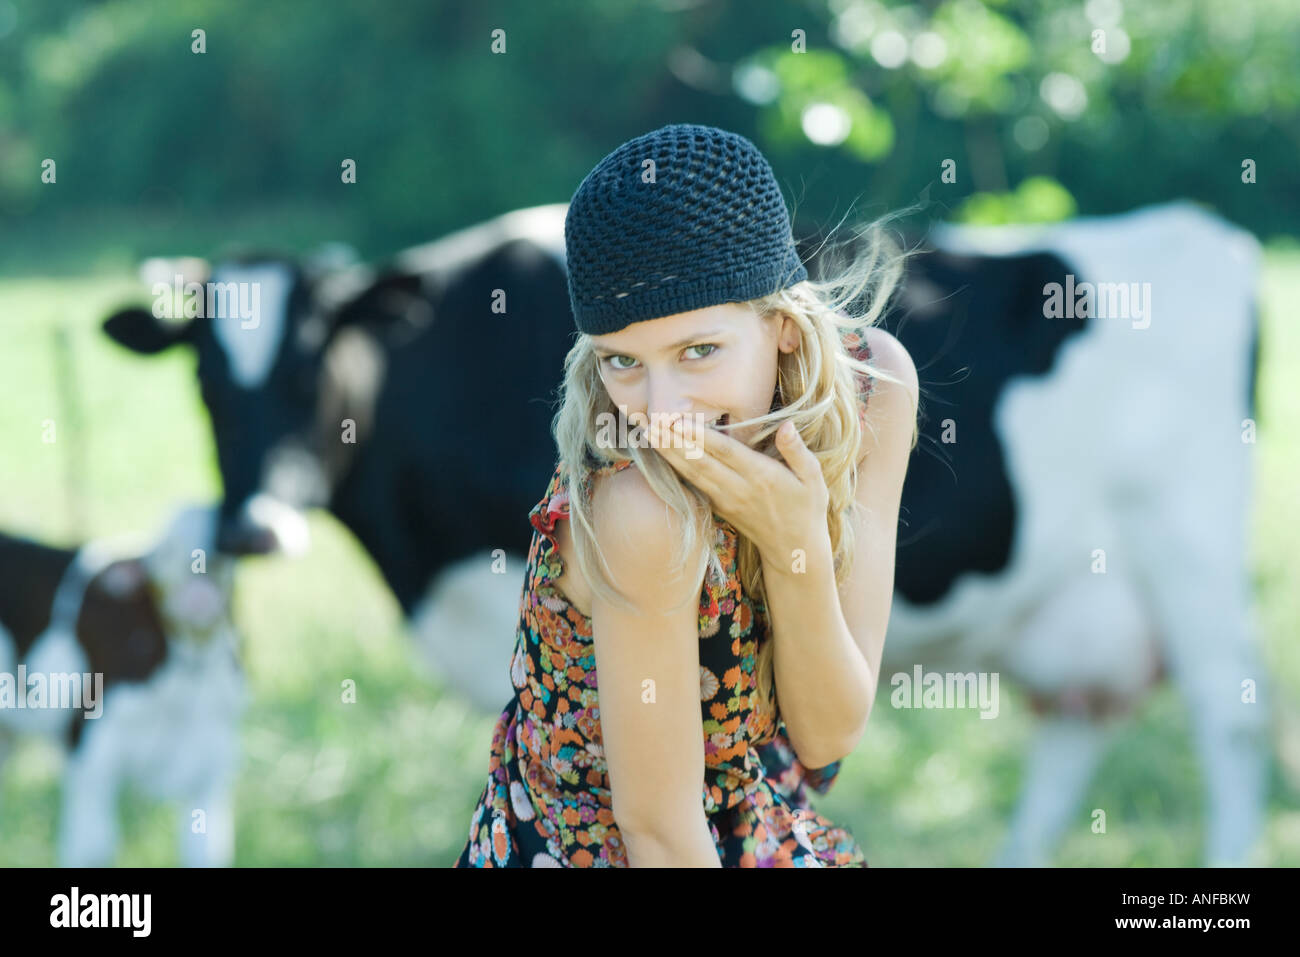 Young woman covering mouth with hand, looking at camera, cows in background - Stock Image